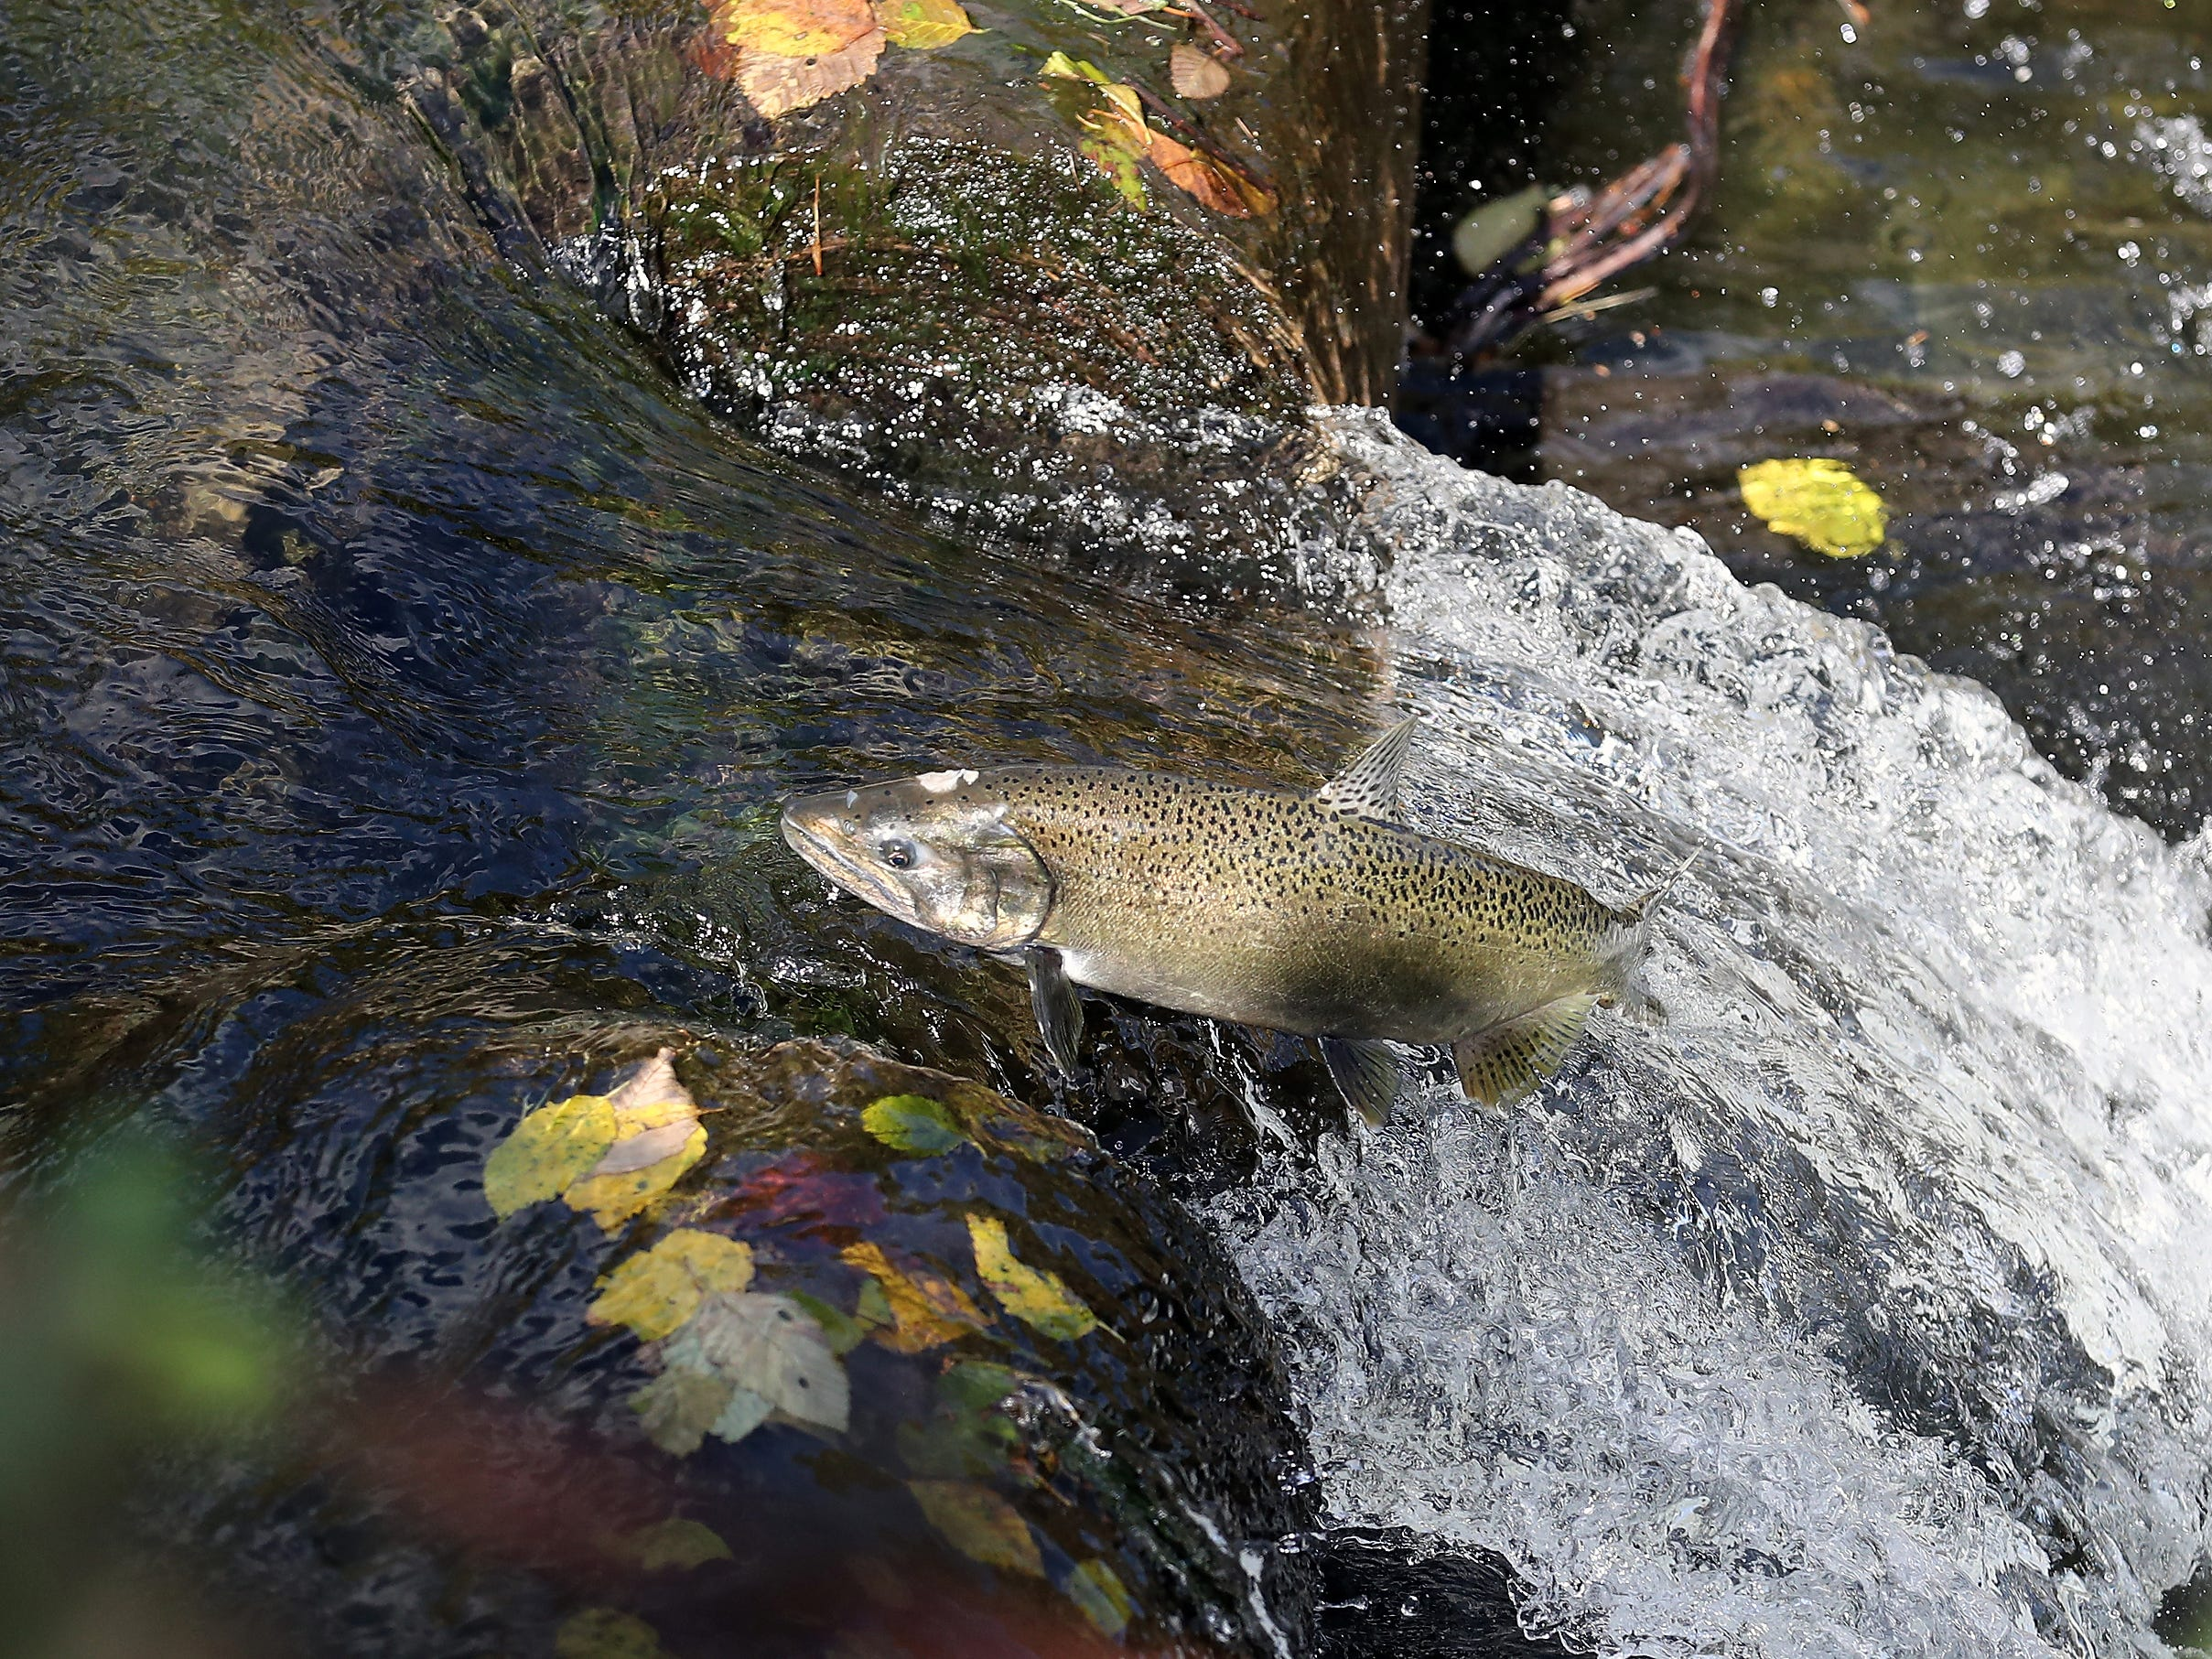 A female chinook jumps the falling water and succeeds in making it up the weir behind the Gorst Creek Hatchery in Gorst , Washington on Monday, September 24, 2018. Volunteers spent Monday afternoon sandbagging parts of the creek to get the water level high enough at this particular weir because the salmon were having too hard of a time clearing it to spawn up stream.